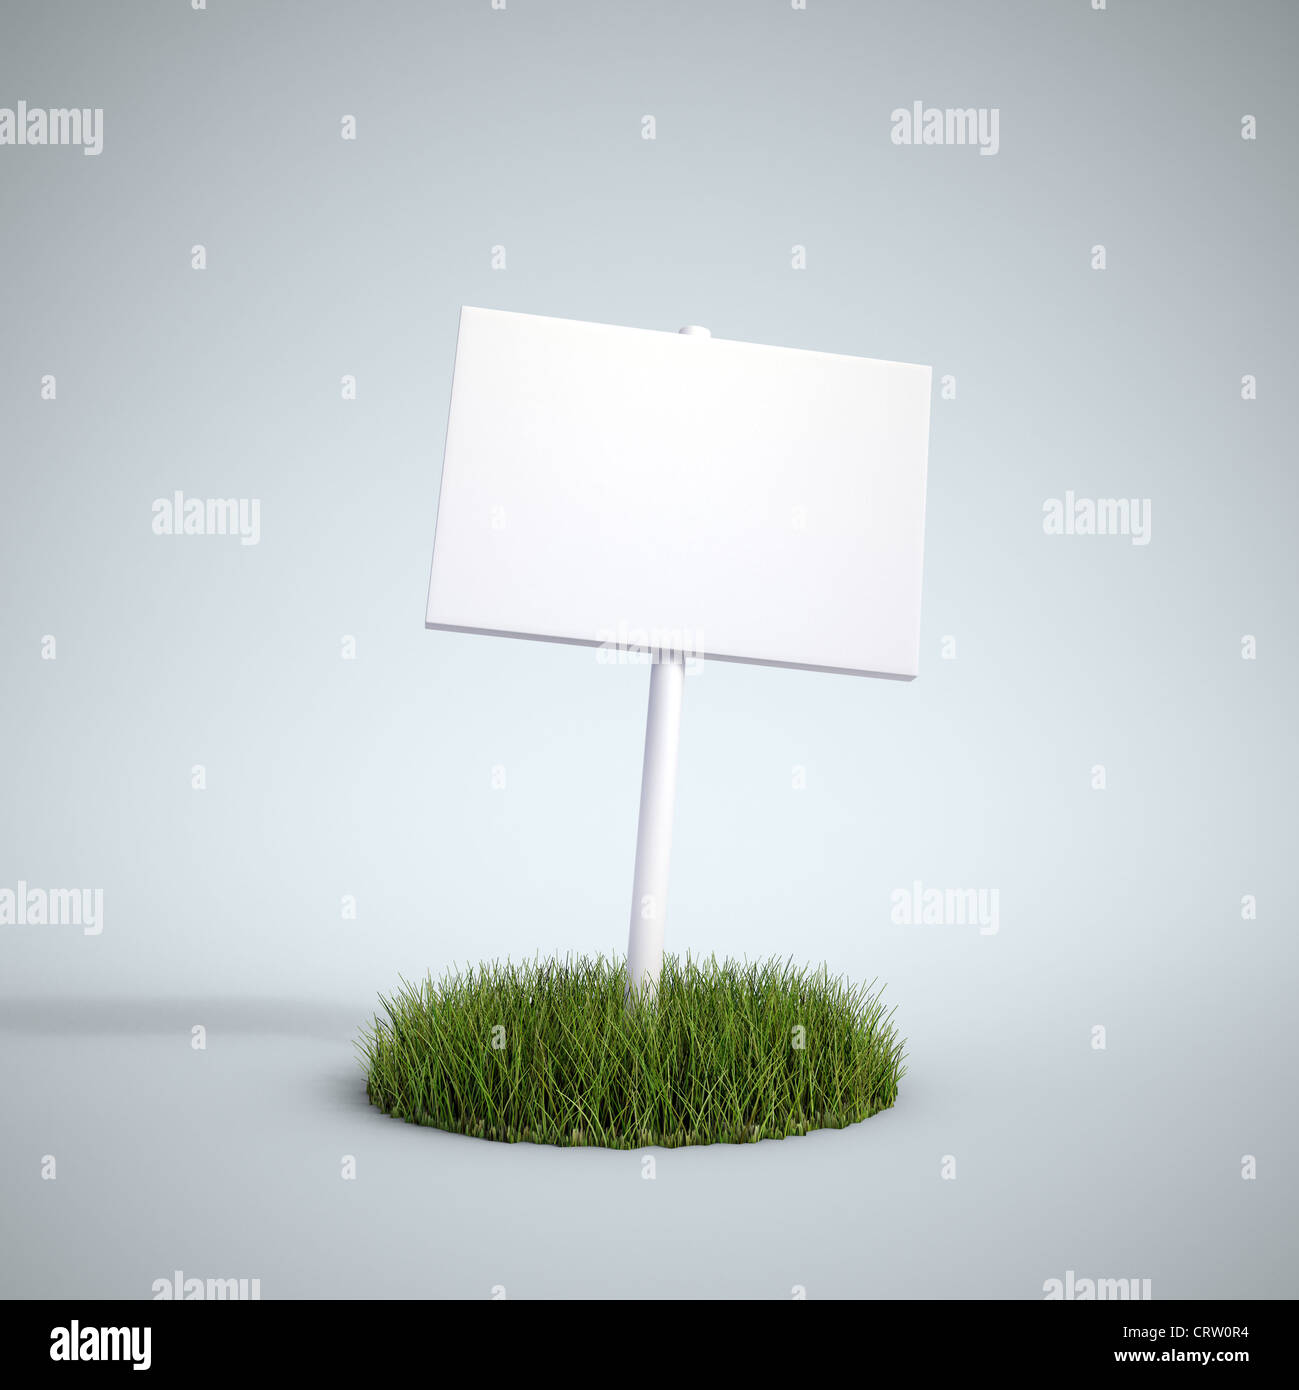 An empty sign on a patch of grass - Stock Image